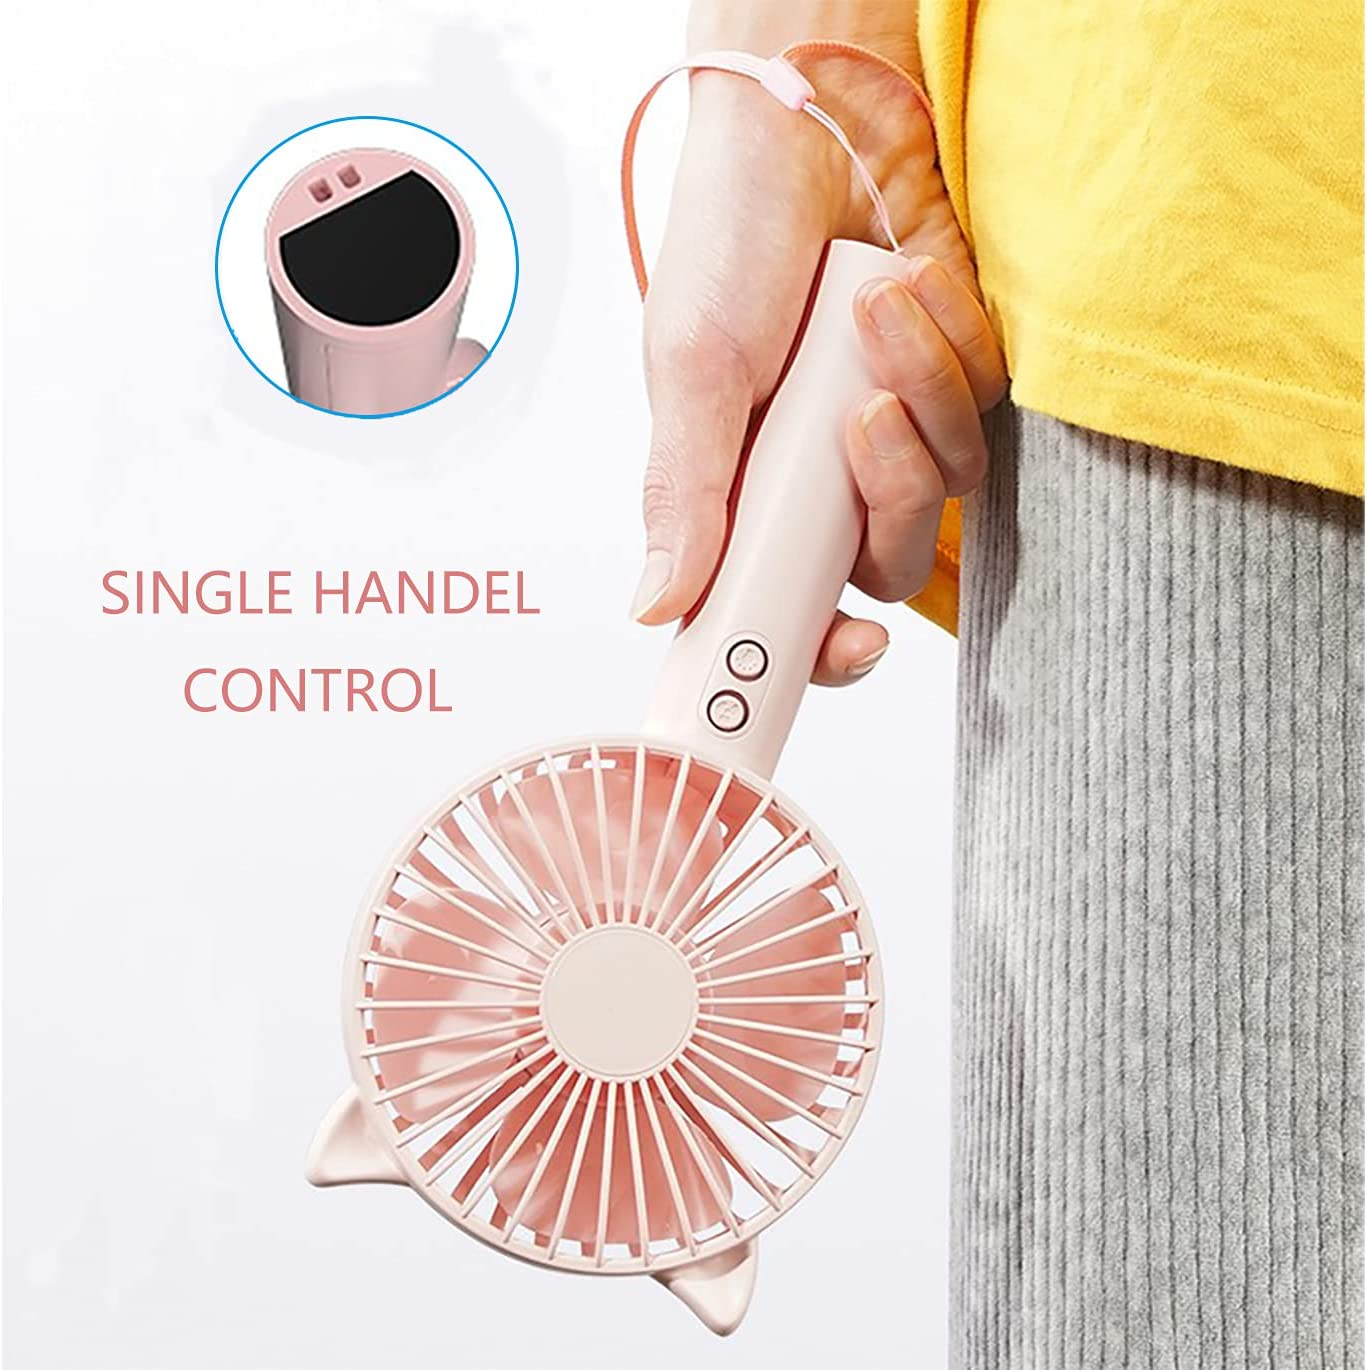 Mini Handheld Fan,Quiet Personal Portable Fan with 3 Speed, Small Desk Fan with USB Rechargeable Battery, Multifunction USB Fan with Night Light,Table Fan With Base to Put the Phone,for Outdoor,Travel, School, Home, Office (Dark Blue)